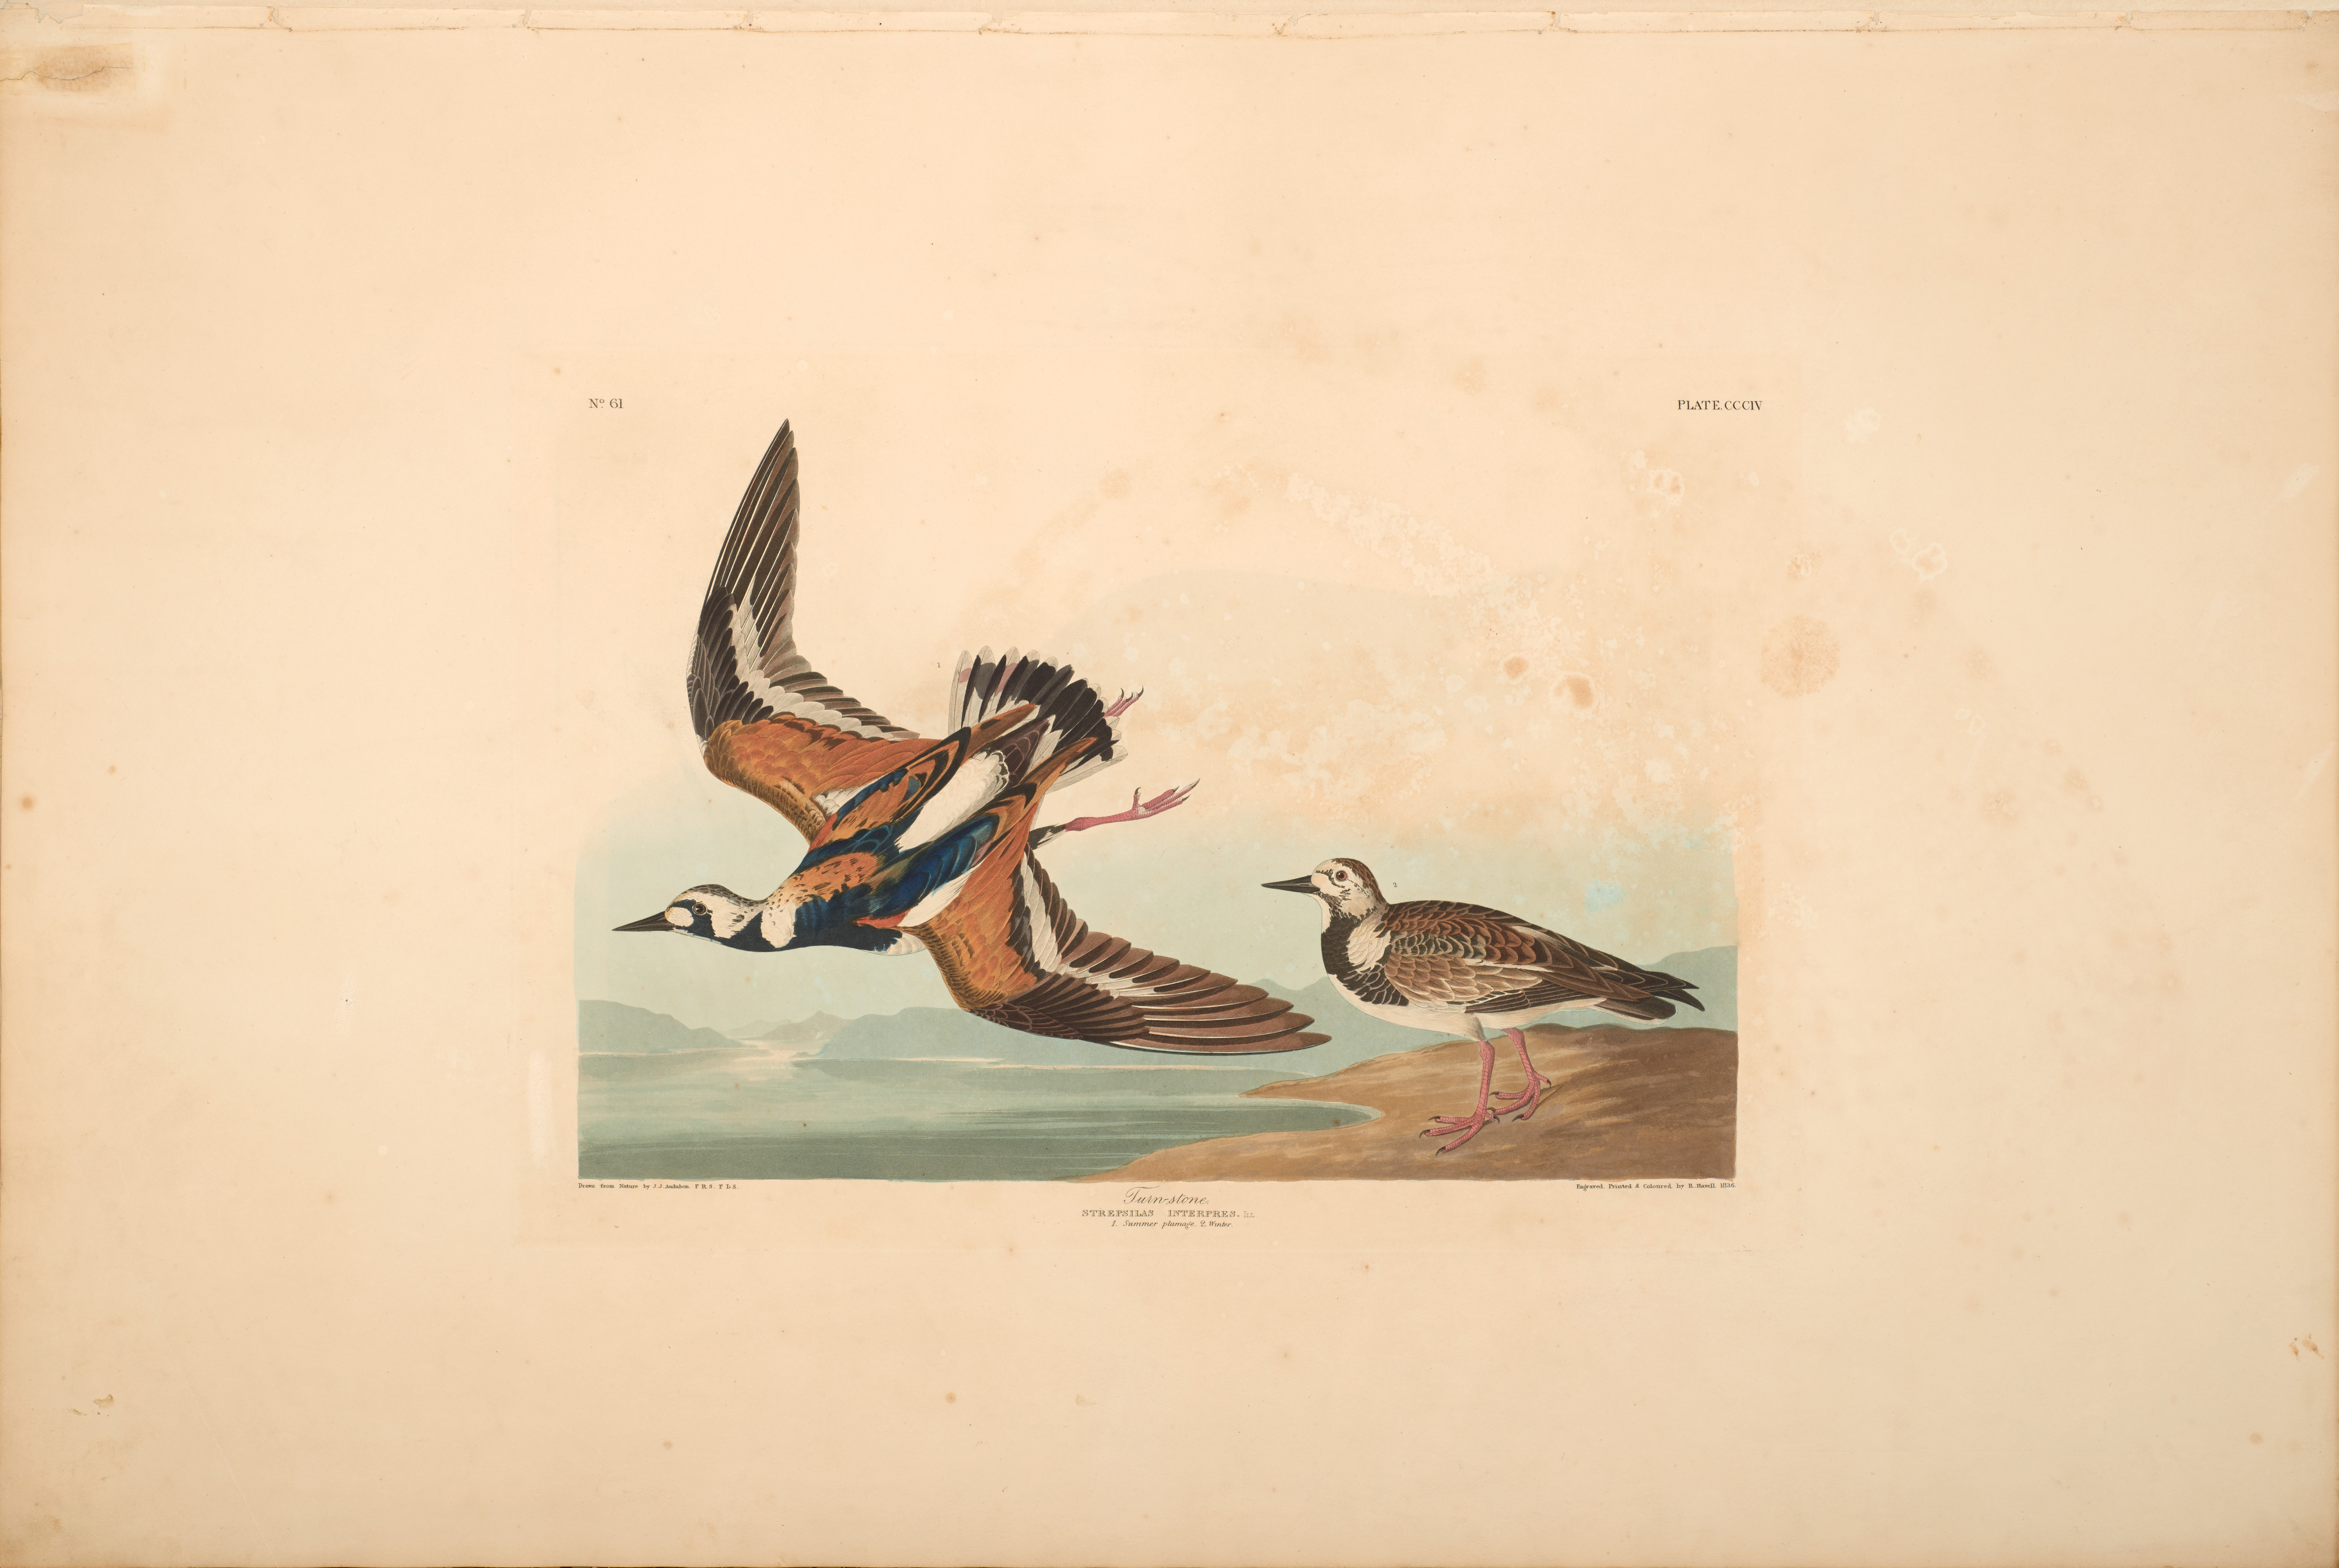 John James Audubon, Turn-stone, from The Birds of America, 1827 – 38 , h and - colored aquatint/engraving on paper , 40 x 26 in., North Carolina Museum of Art, Transfer from the North Carolina State Library